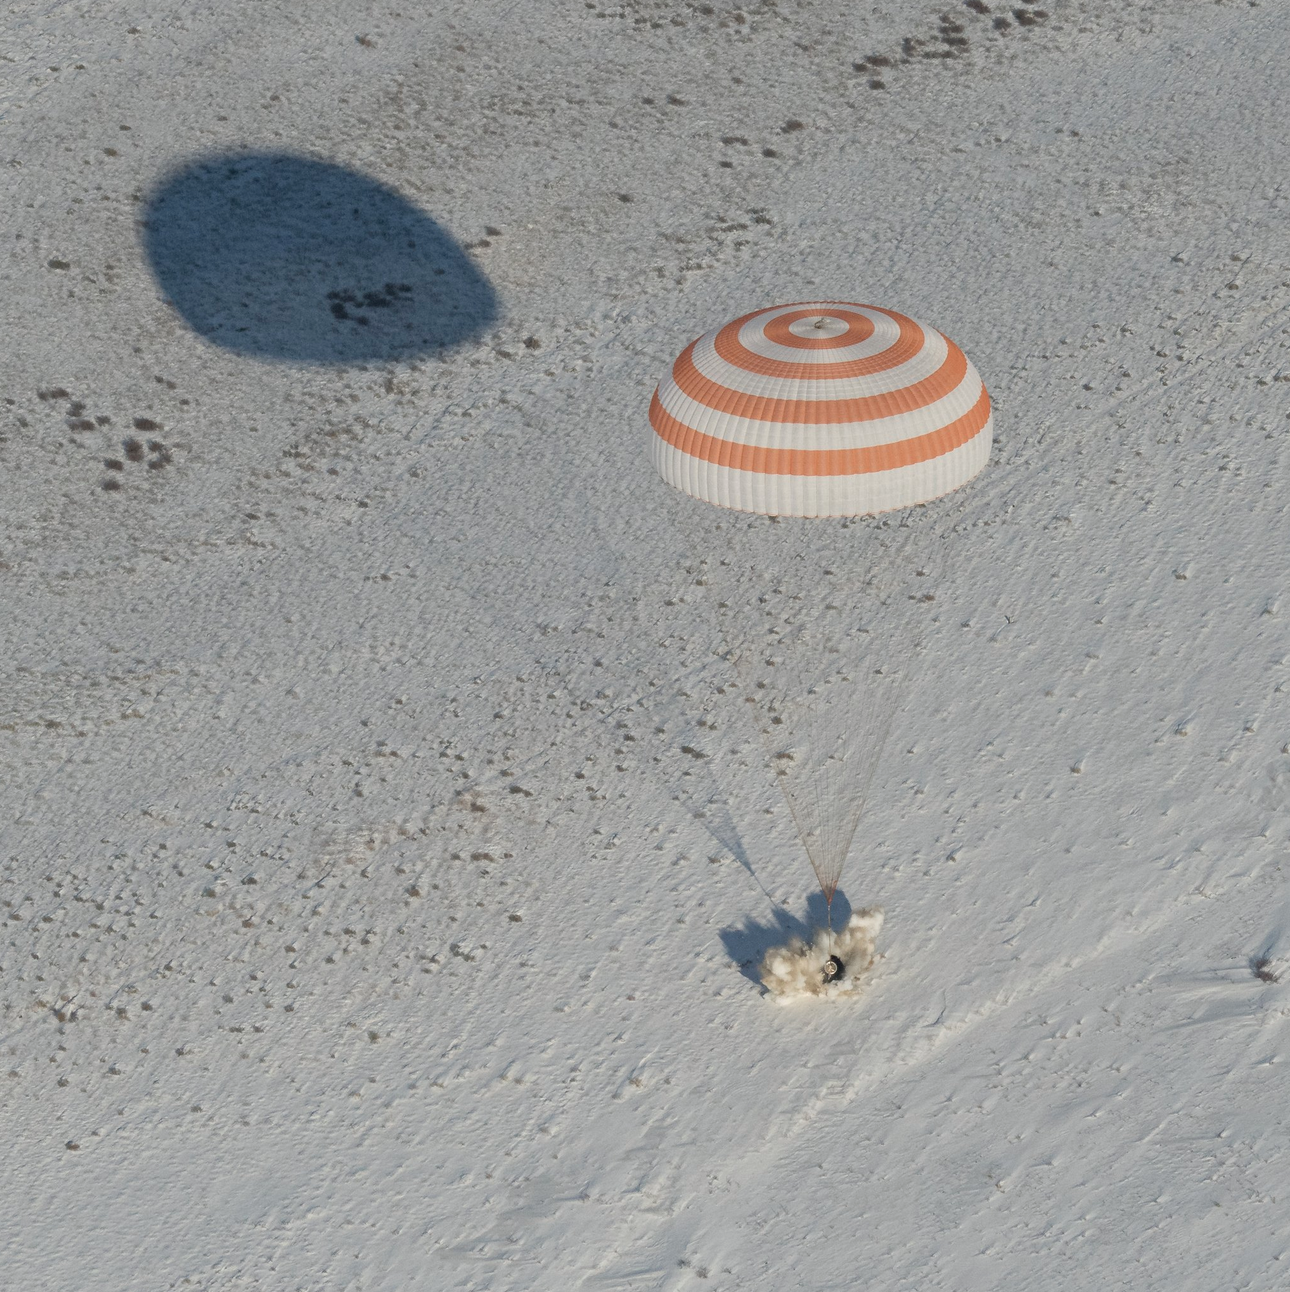 The Soyuz spacecraft touches down in Kazakhstan with three ISS crew members on Thursday.